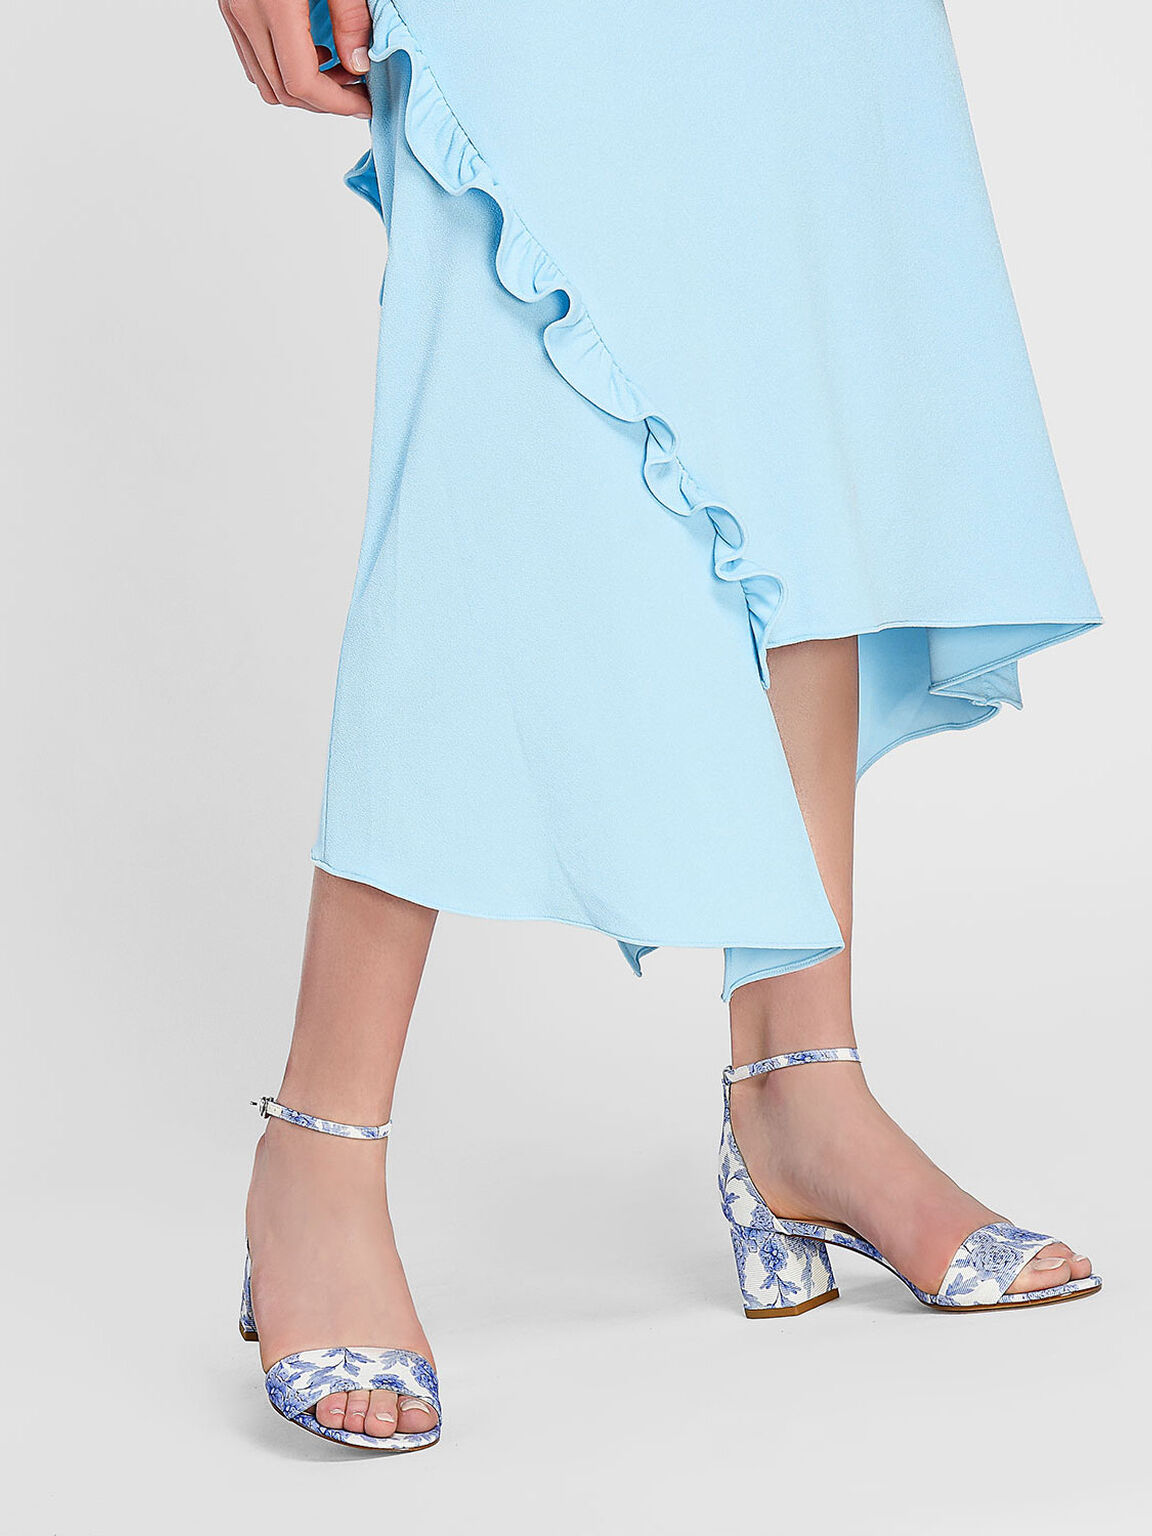 Ankle Strap Sandals, Blue, hi-res